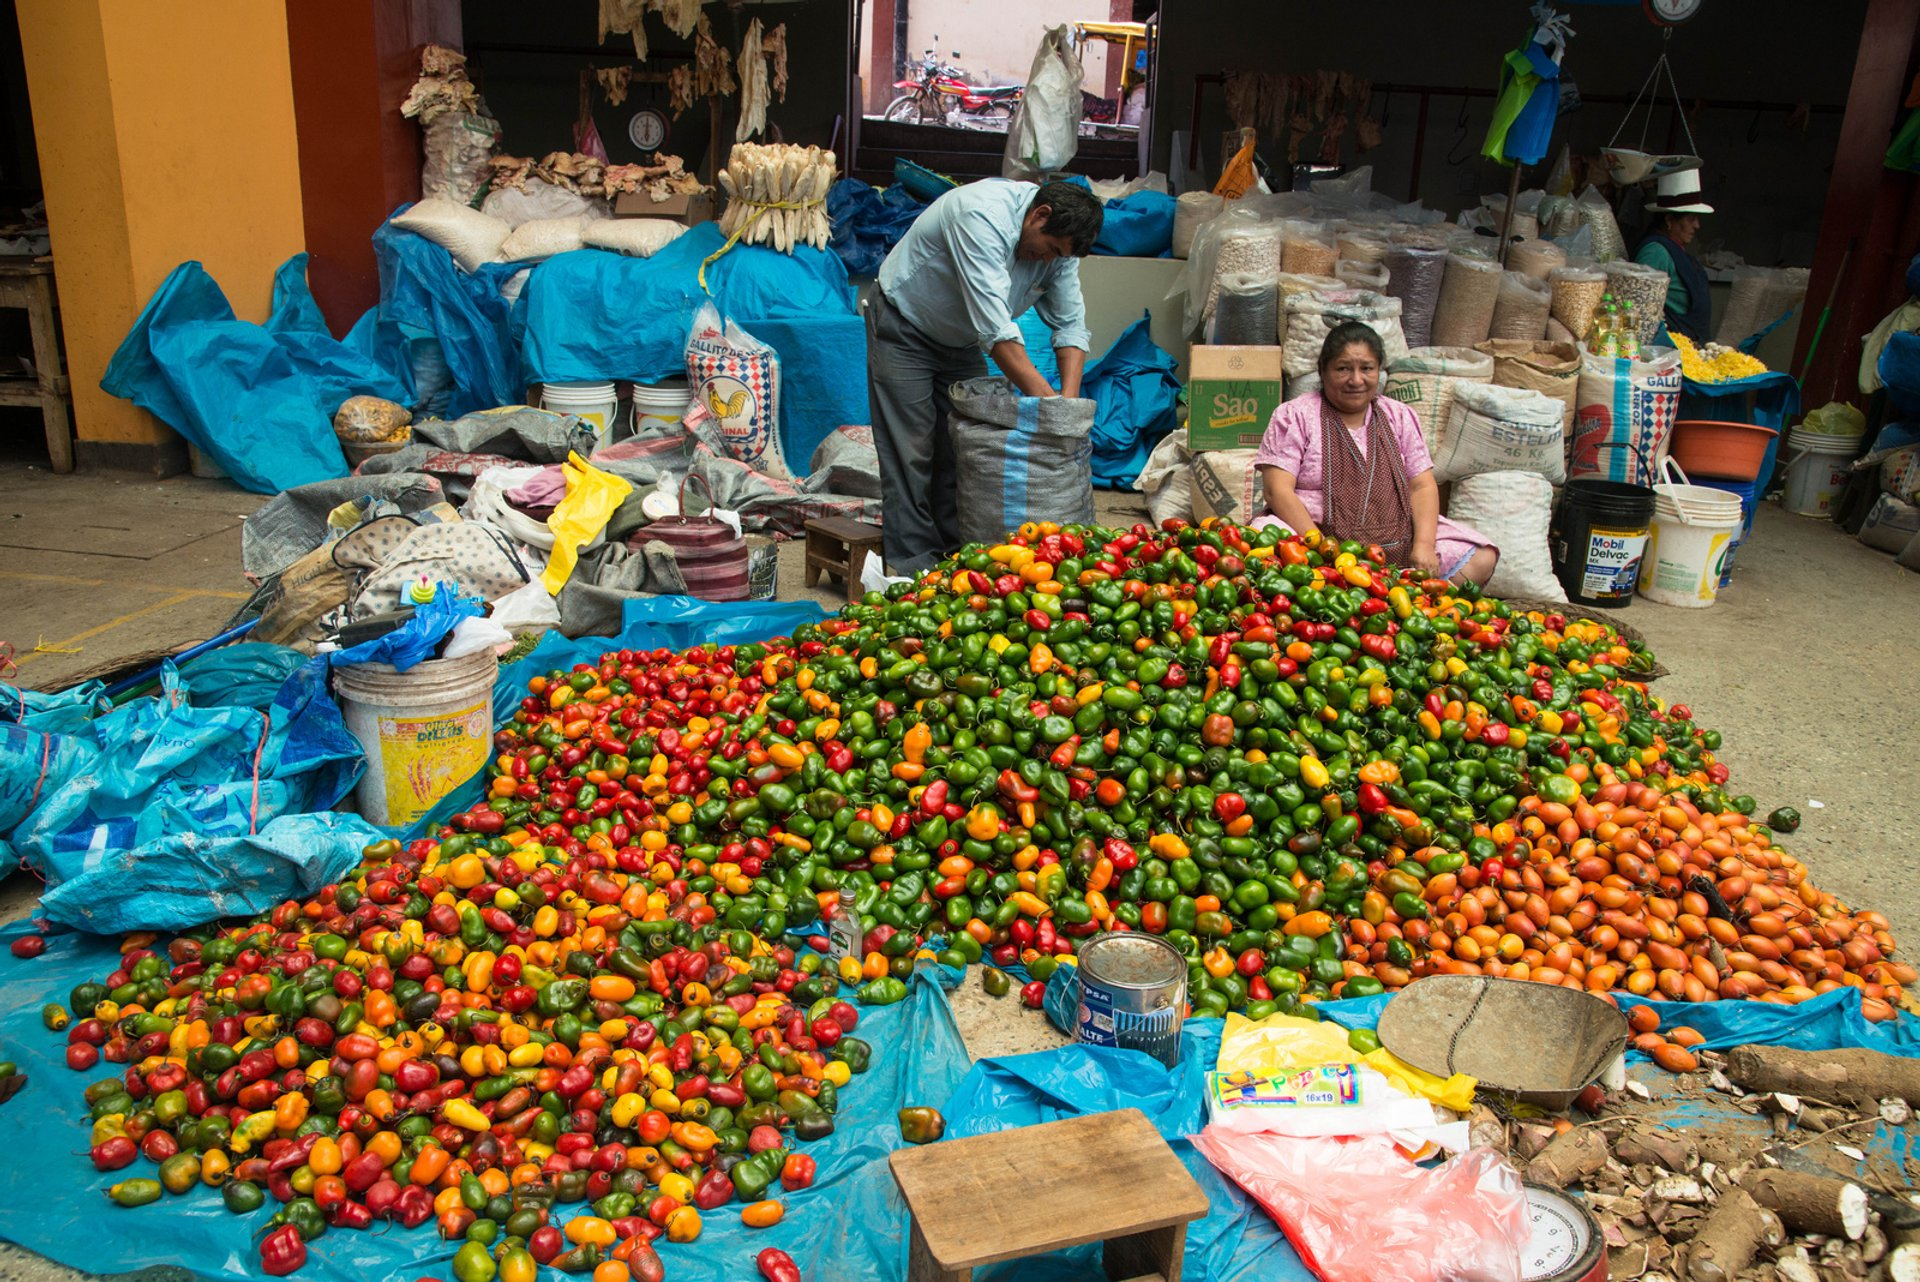 Best time to see Fresh Chili Peppers in Peru 2019